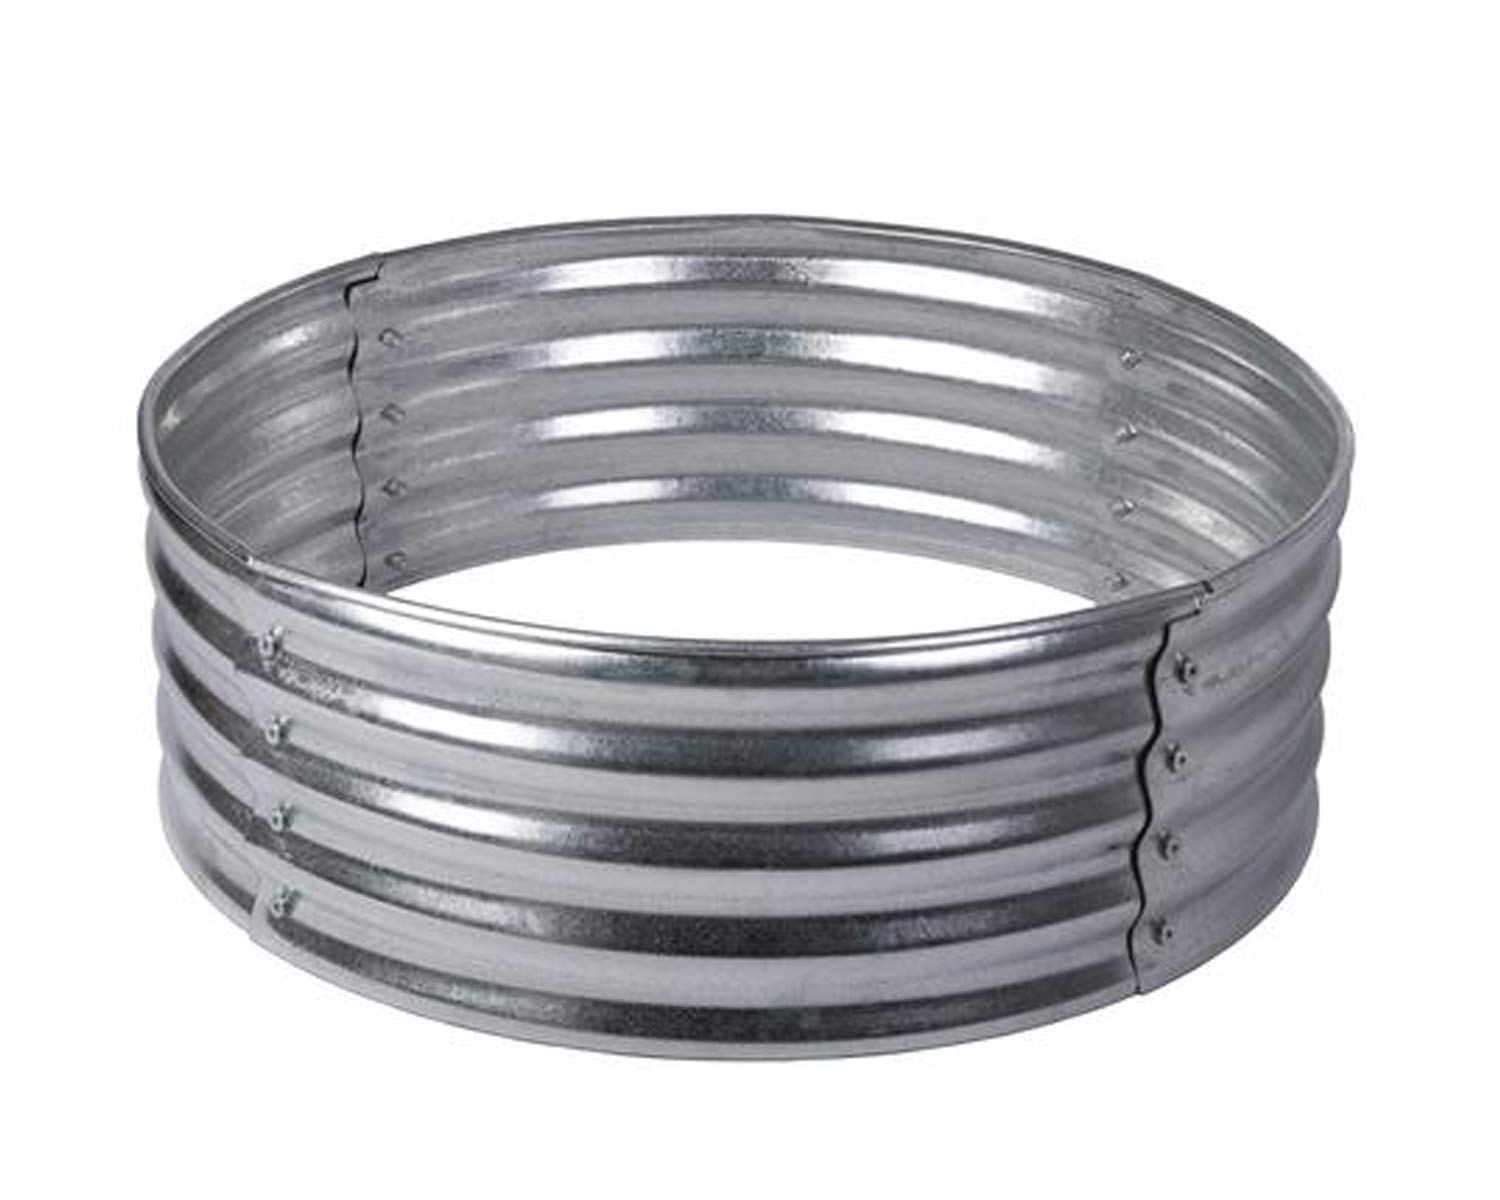 Wisechoice 36 inch Galvanized Steel Wood Fire Ring | Great for Making Bonfire by Wisechoice